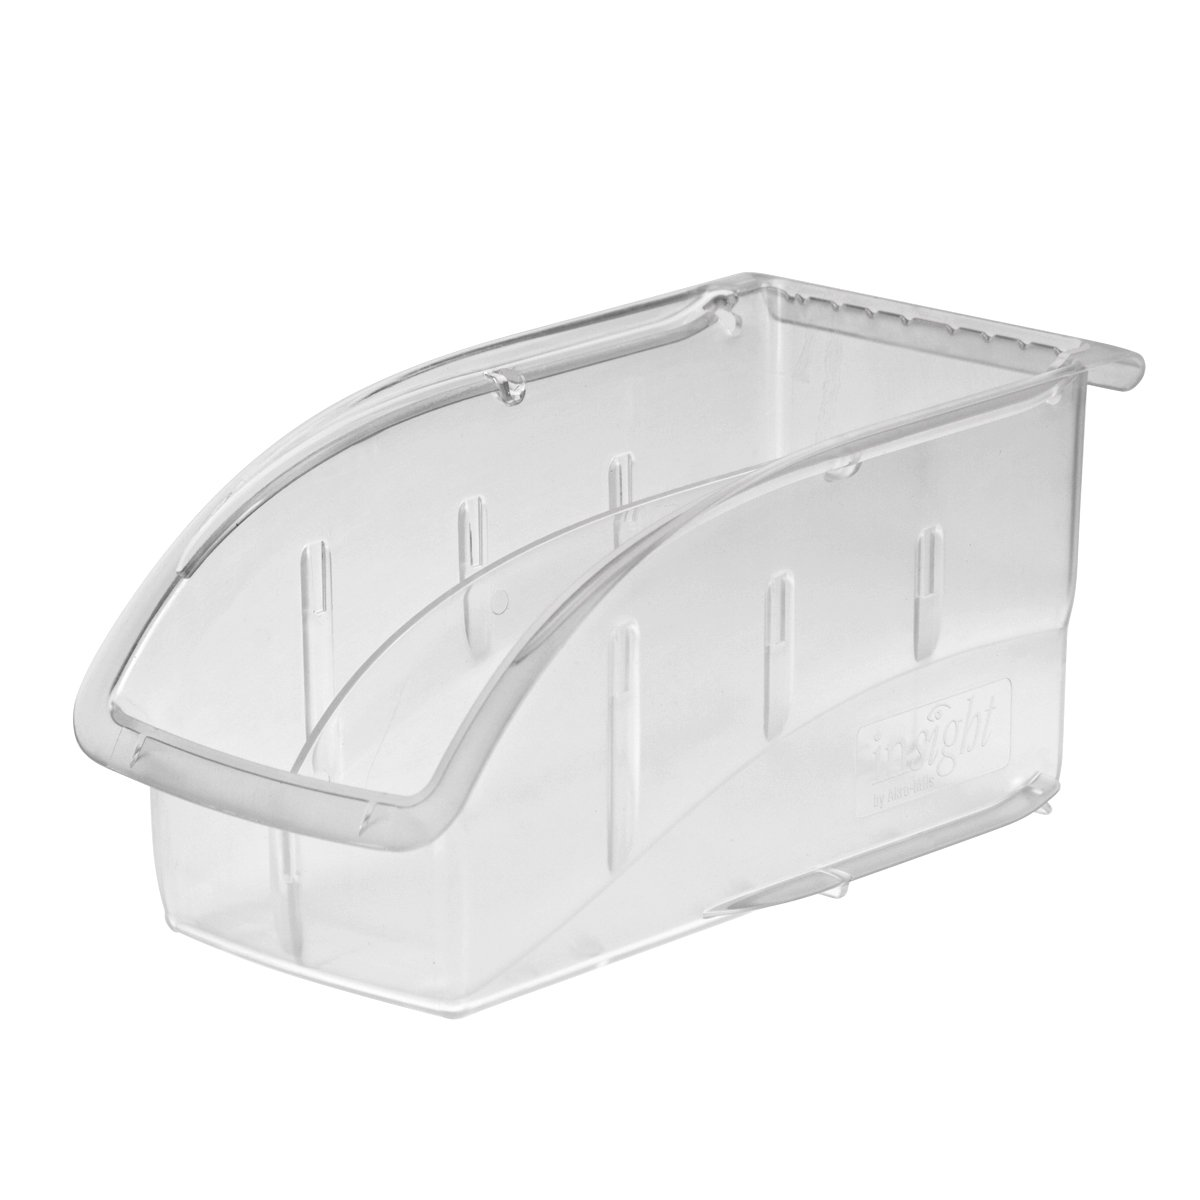 Akro-Mils 305B1 Insight Ultra-Clear Plastic Hanging and Stacking Storage Bin, 10-7/8-Inch Long by 5-1/2-Inch Wide by 5-1/4-Inch Wide, Case of 12